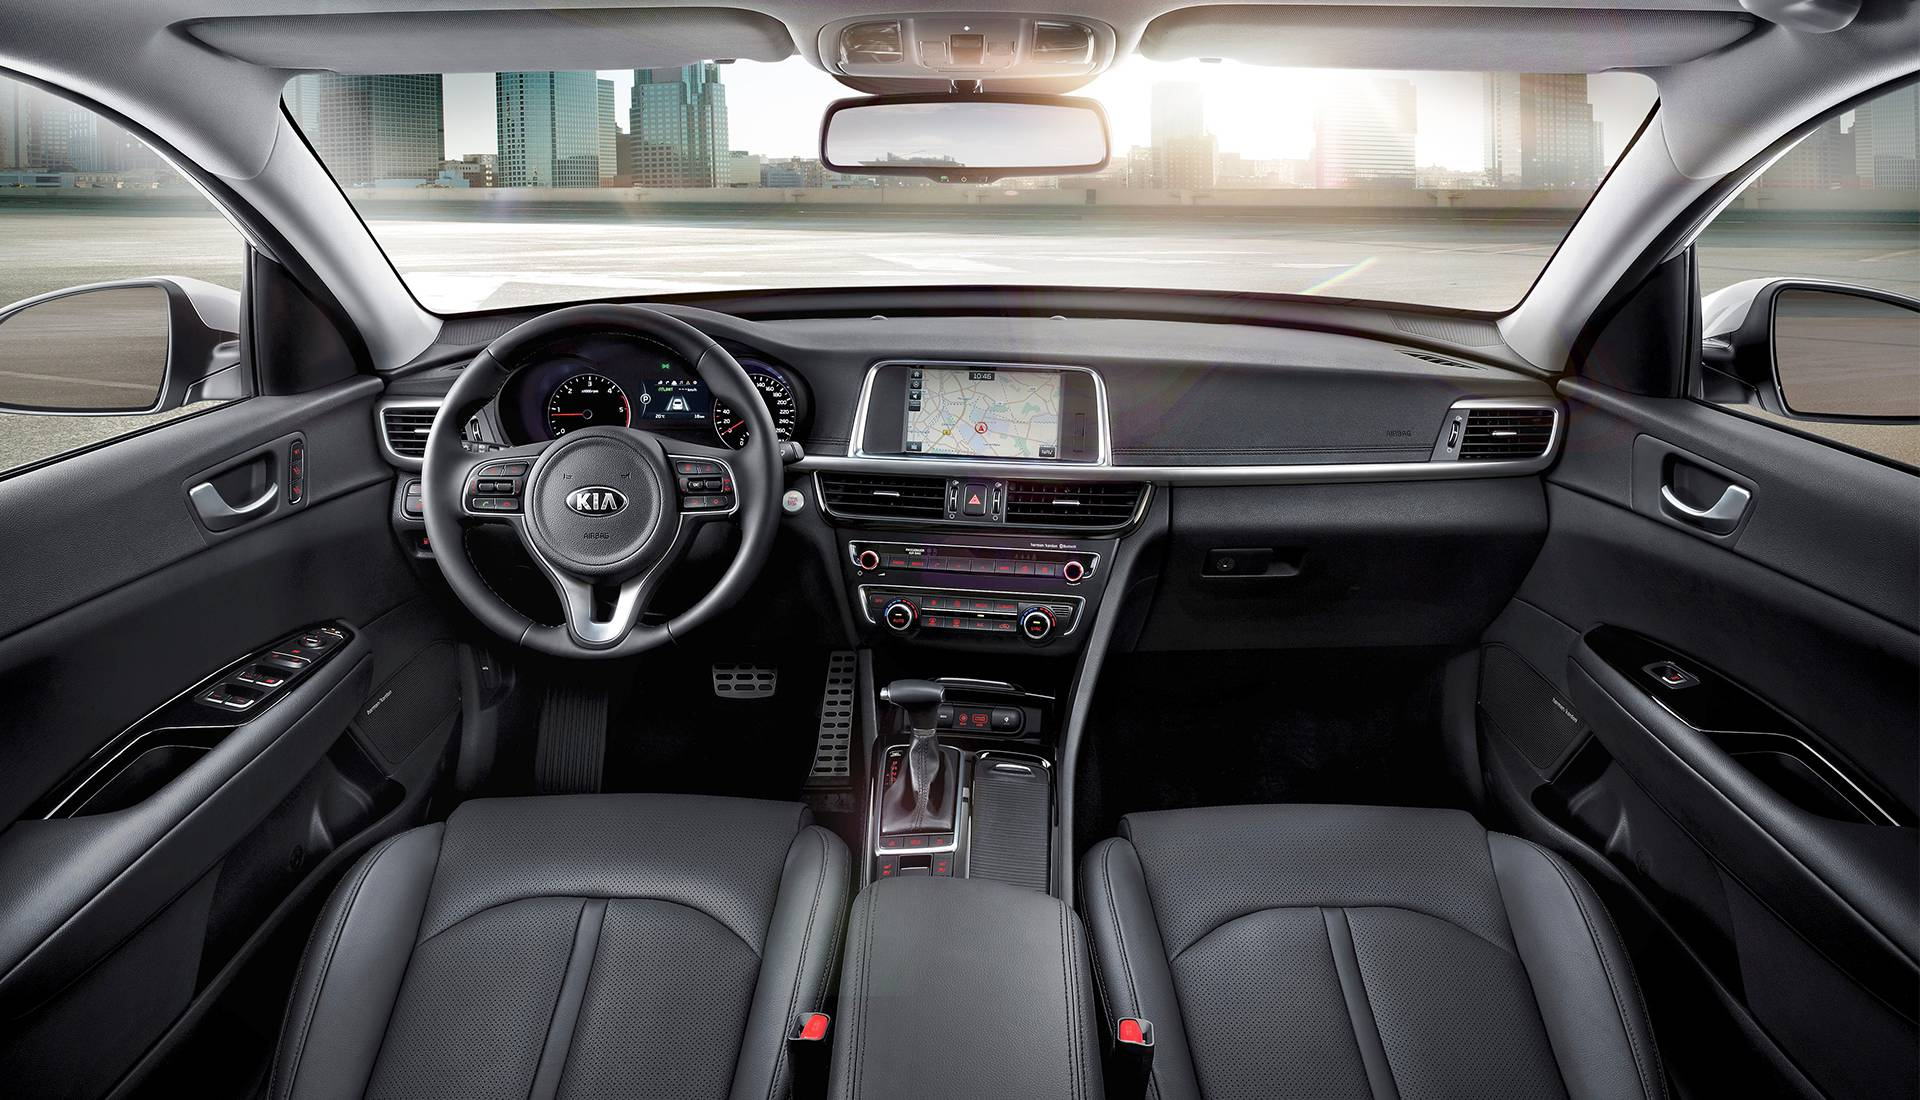 Das Cockpit des Kia Optima SW